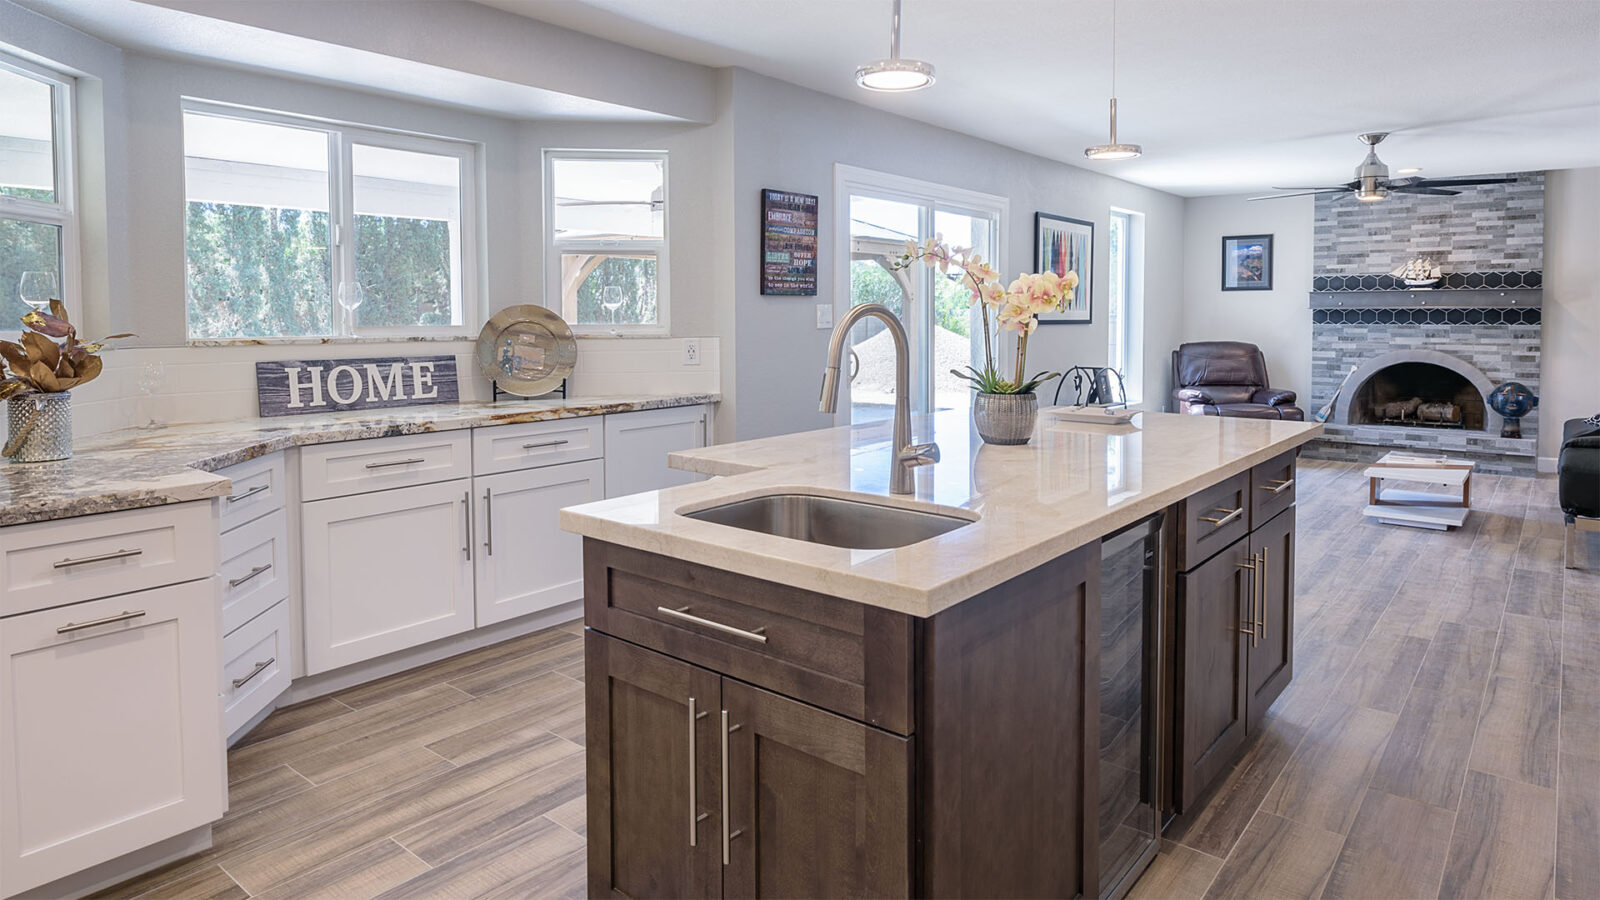 A kitchen island with a white marble finished surface